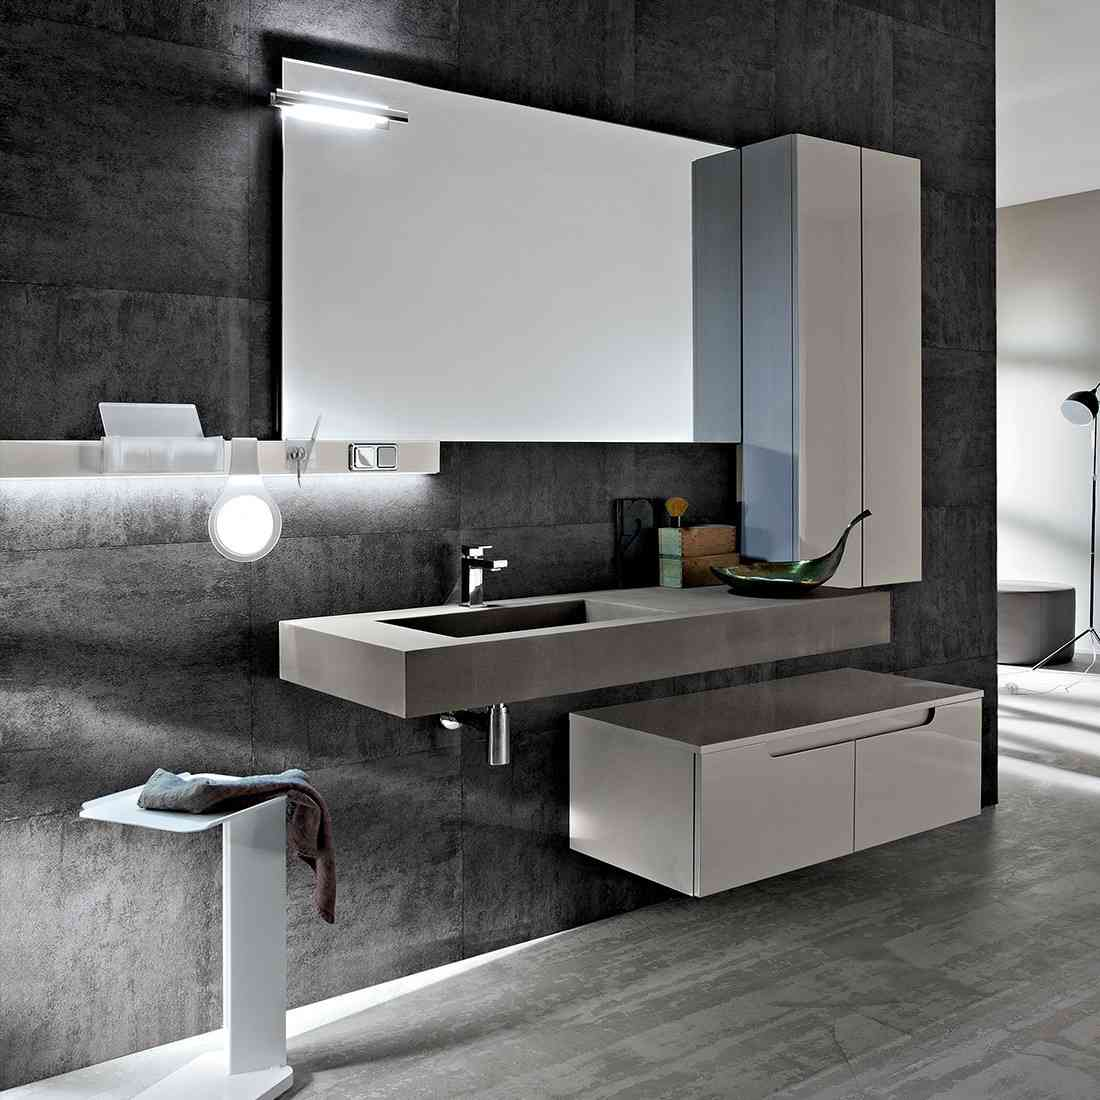 Arredo bagno e contemporary design cerasa perugia for Arredo e design